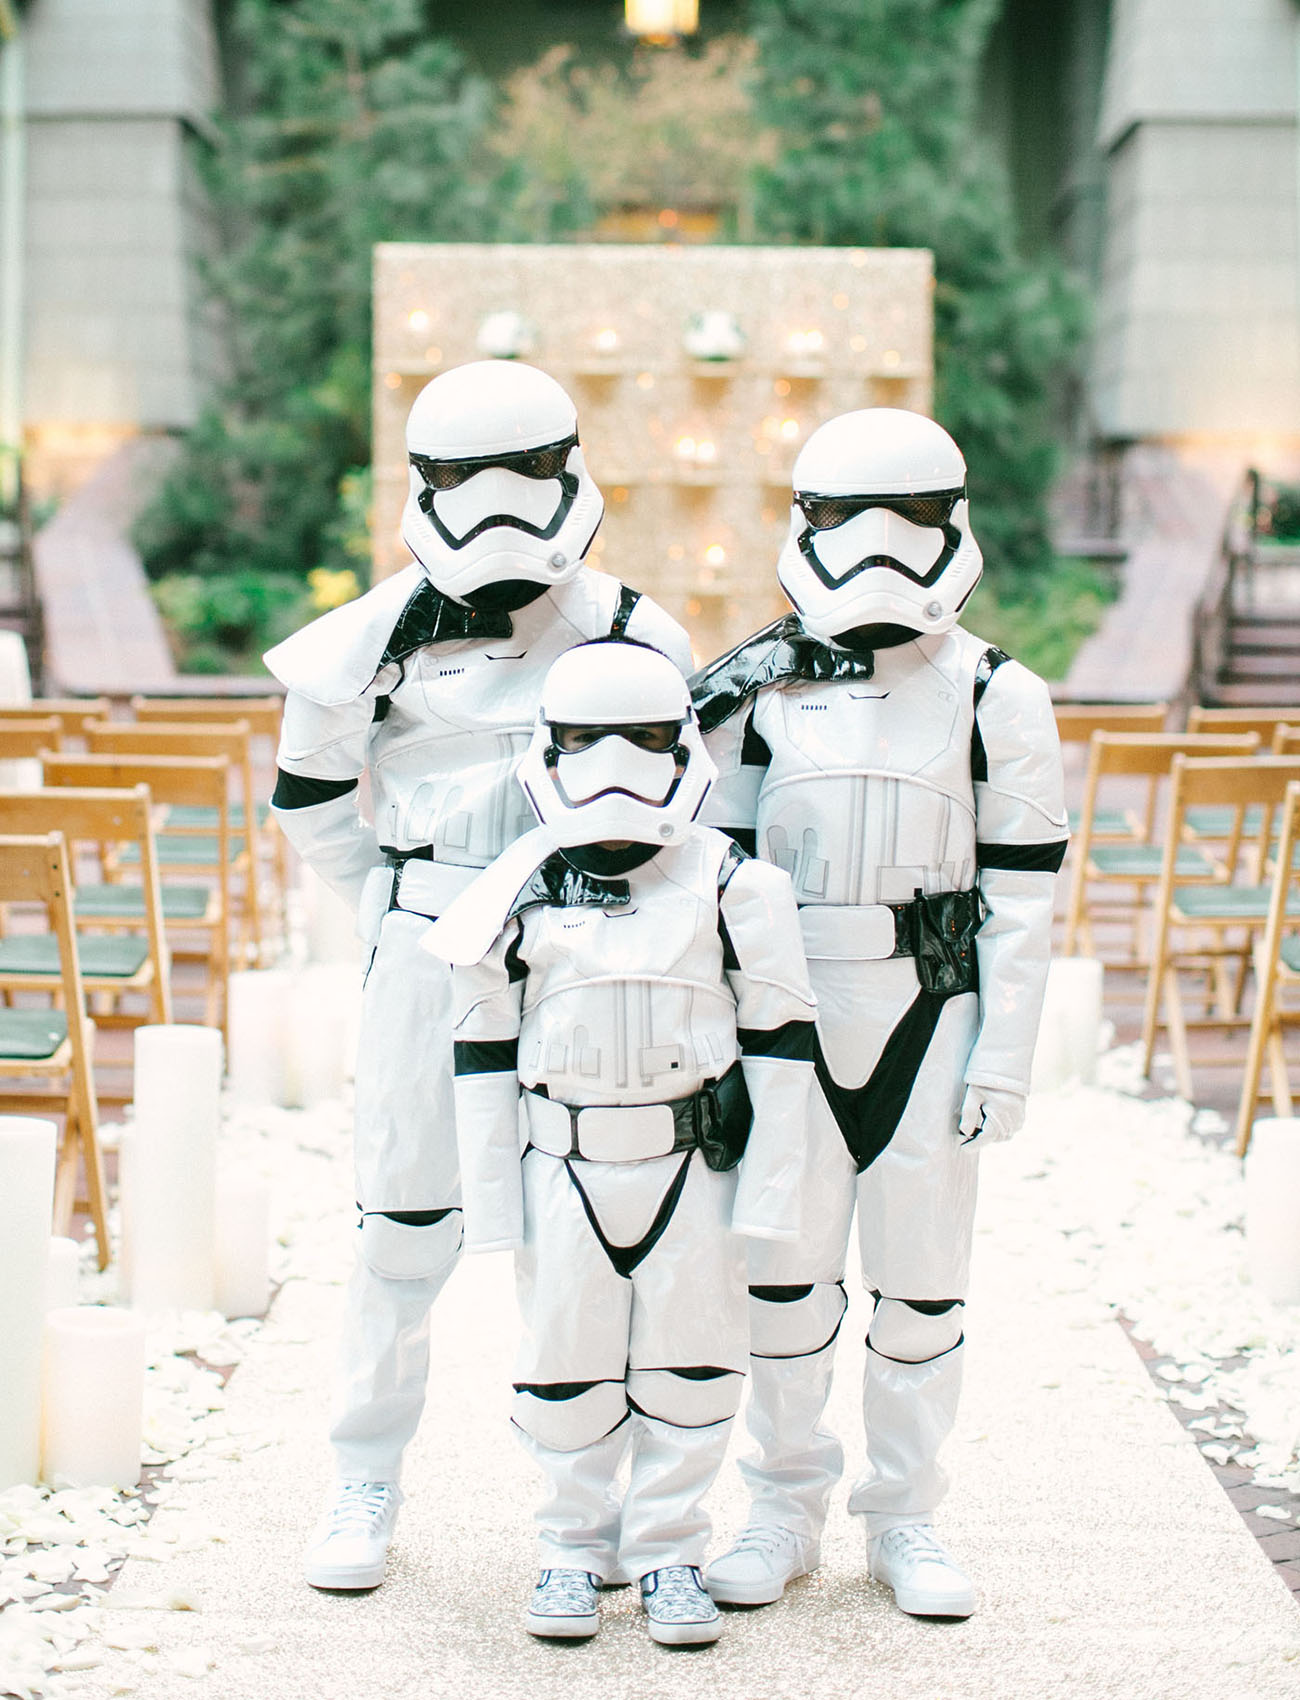 The Force is Strong with this Star Wars Disney Wedding! - Green ...